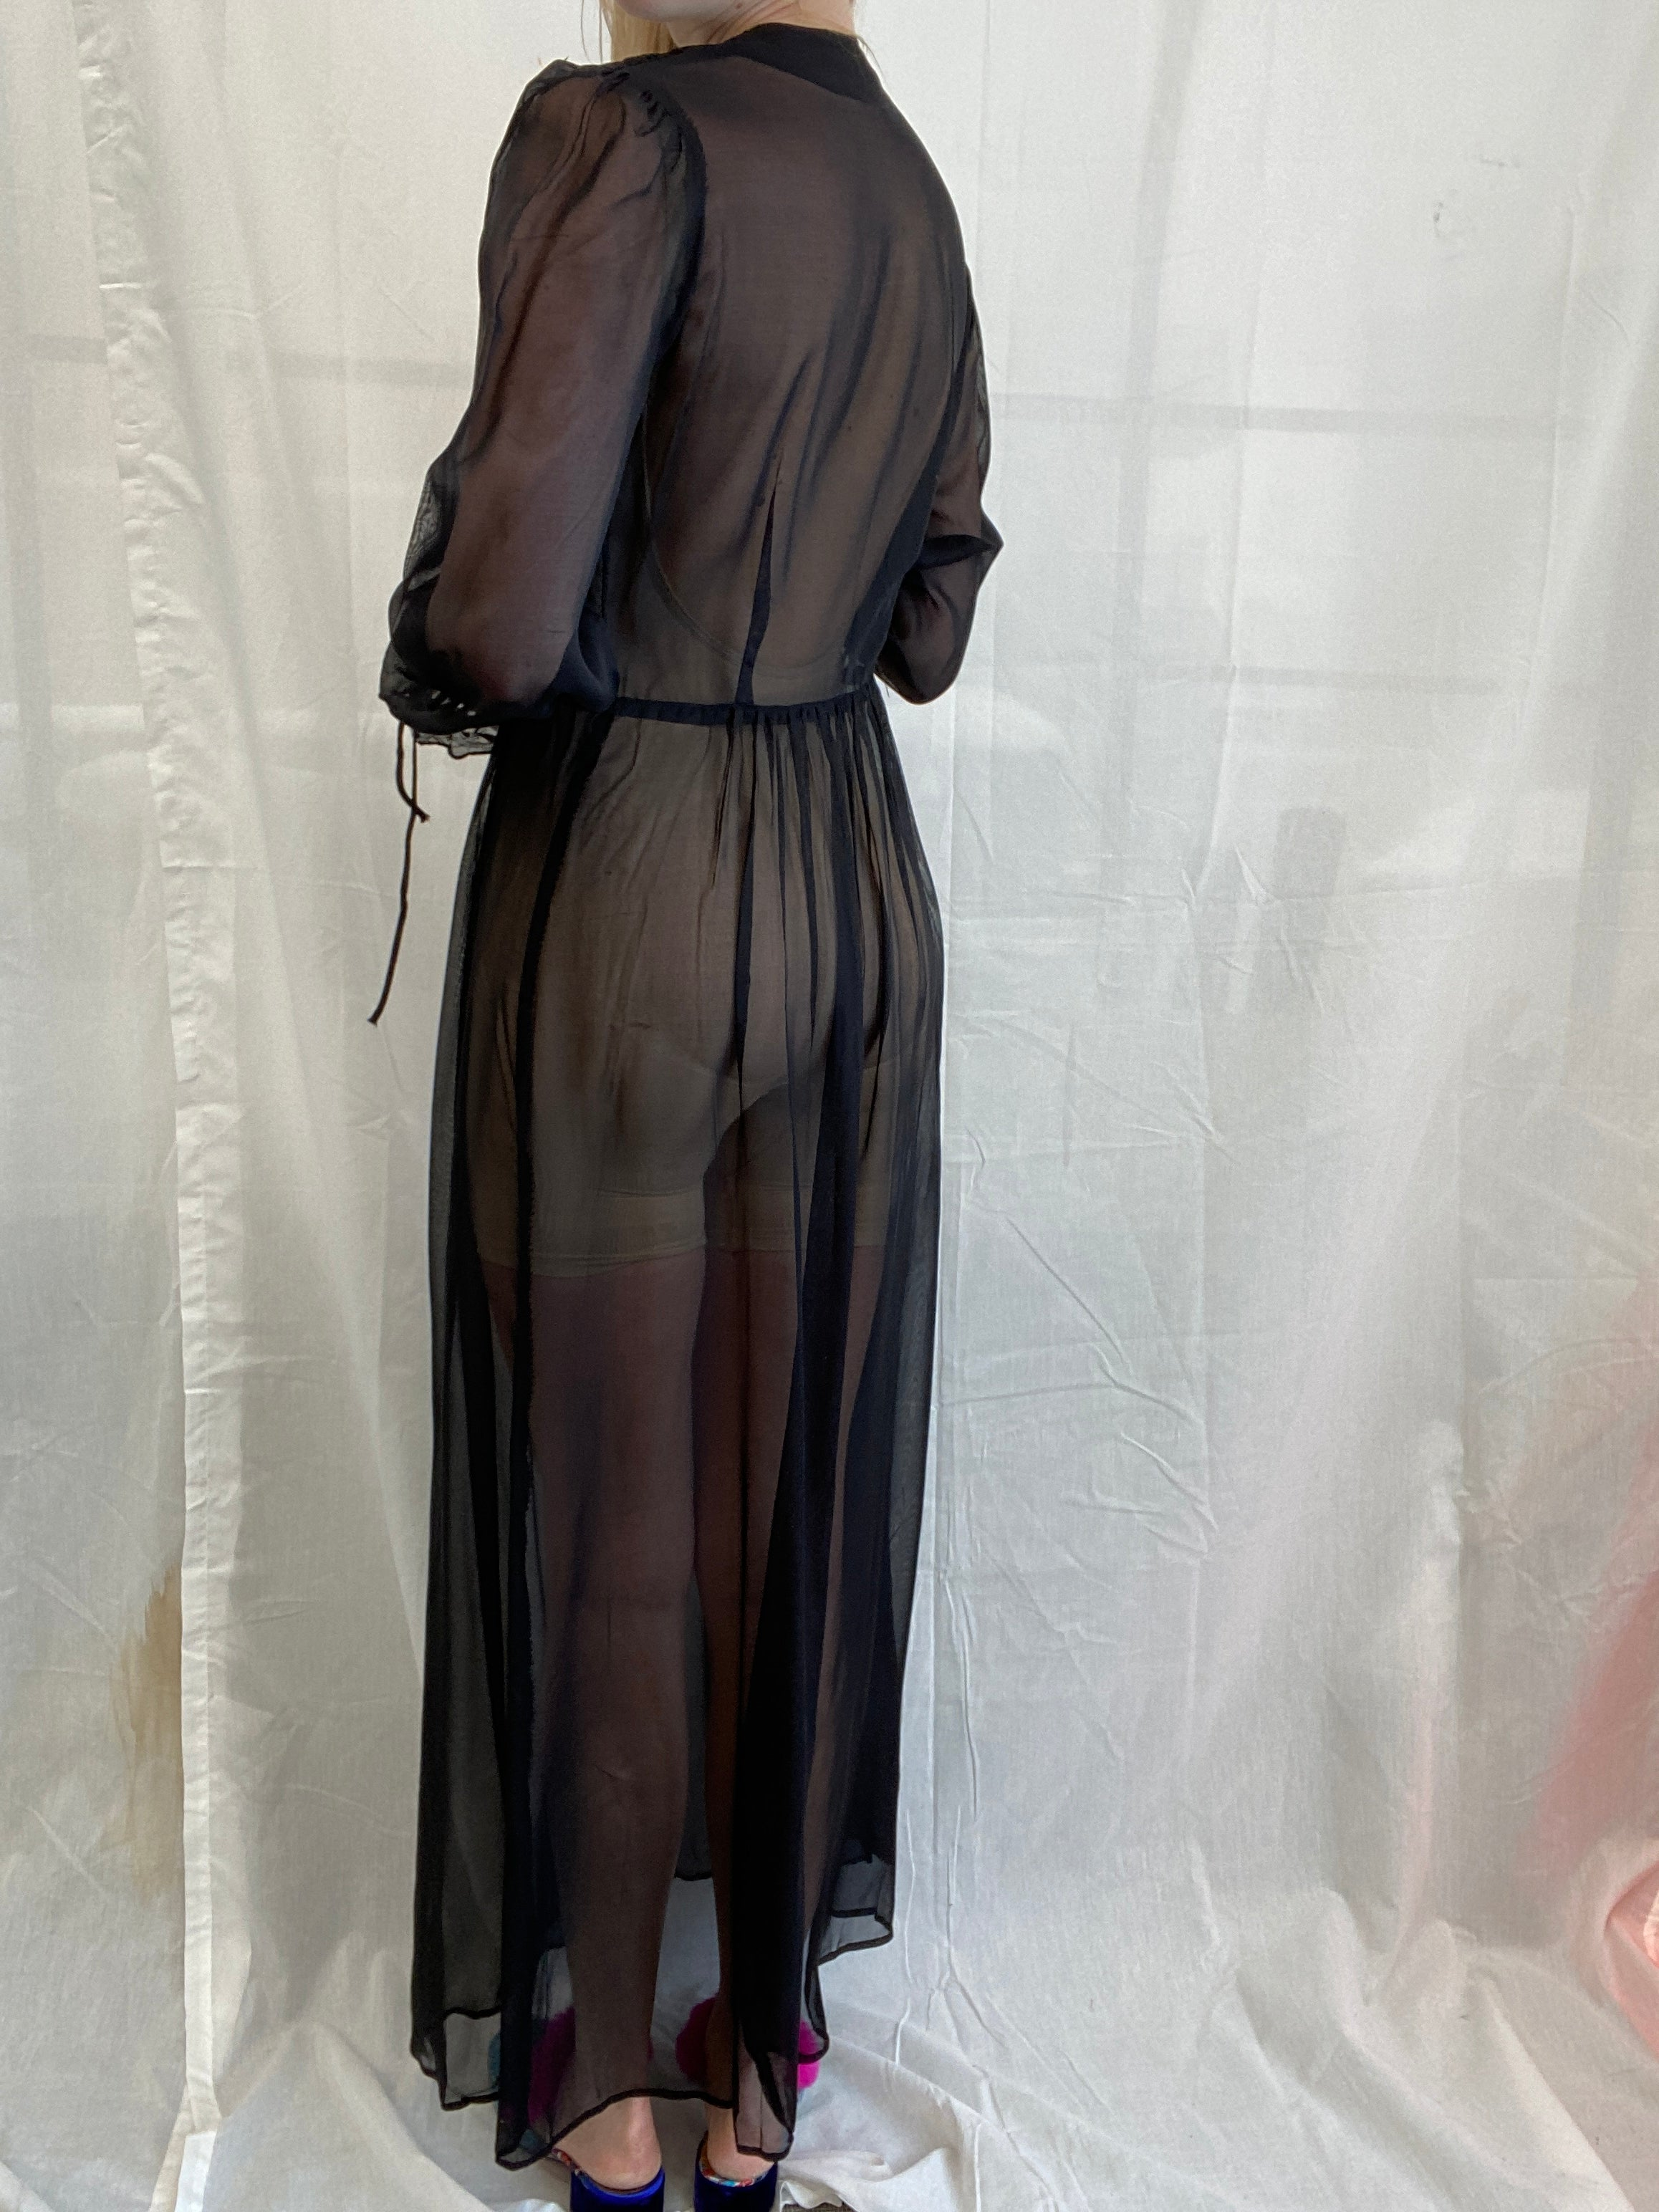 1930's Black Robe with Icy Blue Embroidery